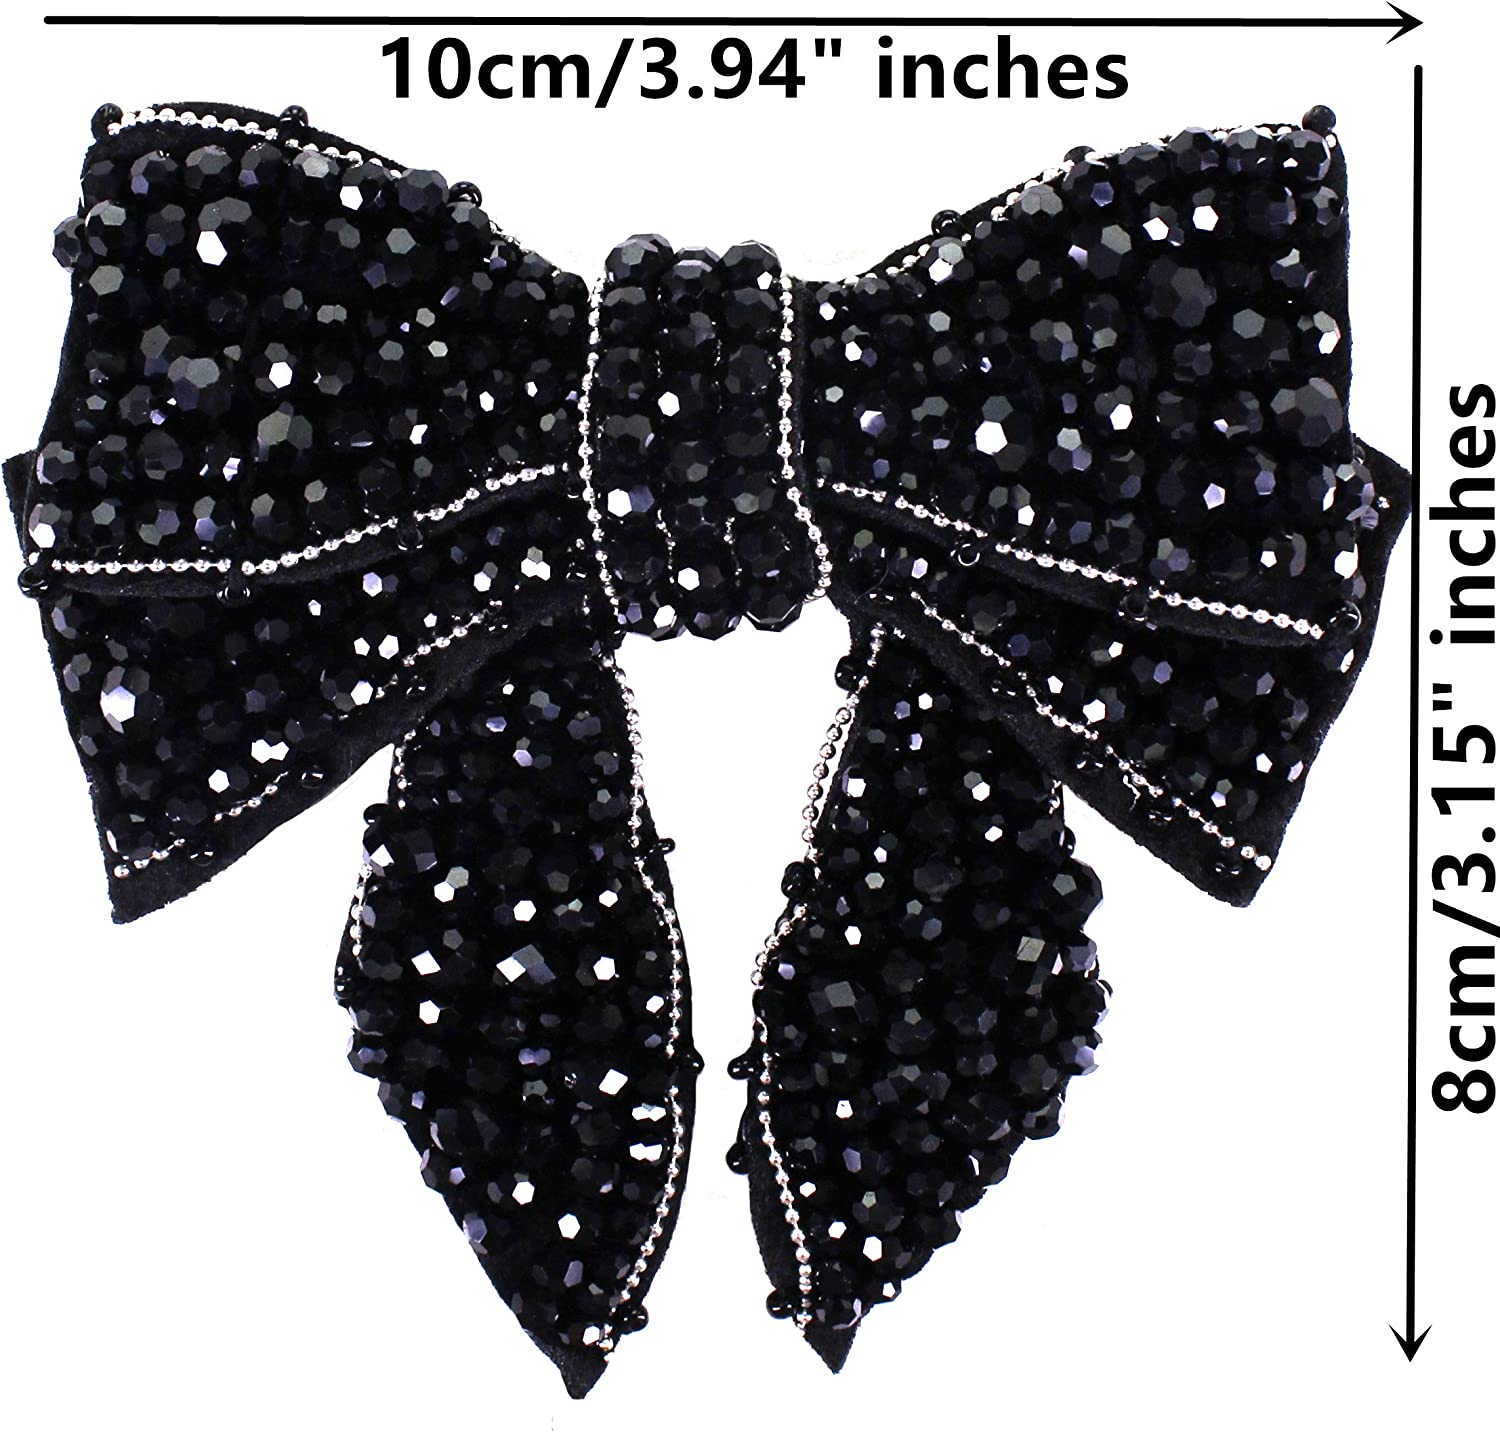 Beaded Bowknot Design Patches Applique Badges for DIY Clothes Collar Tie Shoes Brooches Headband Decorated 1piece Black